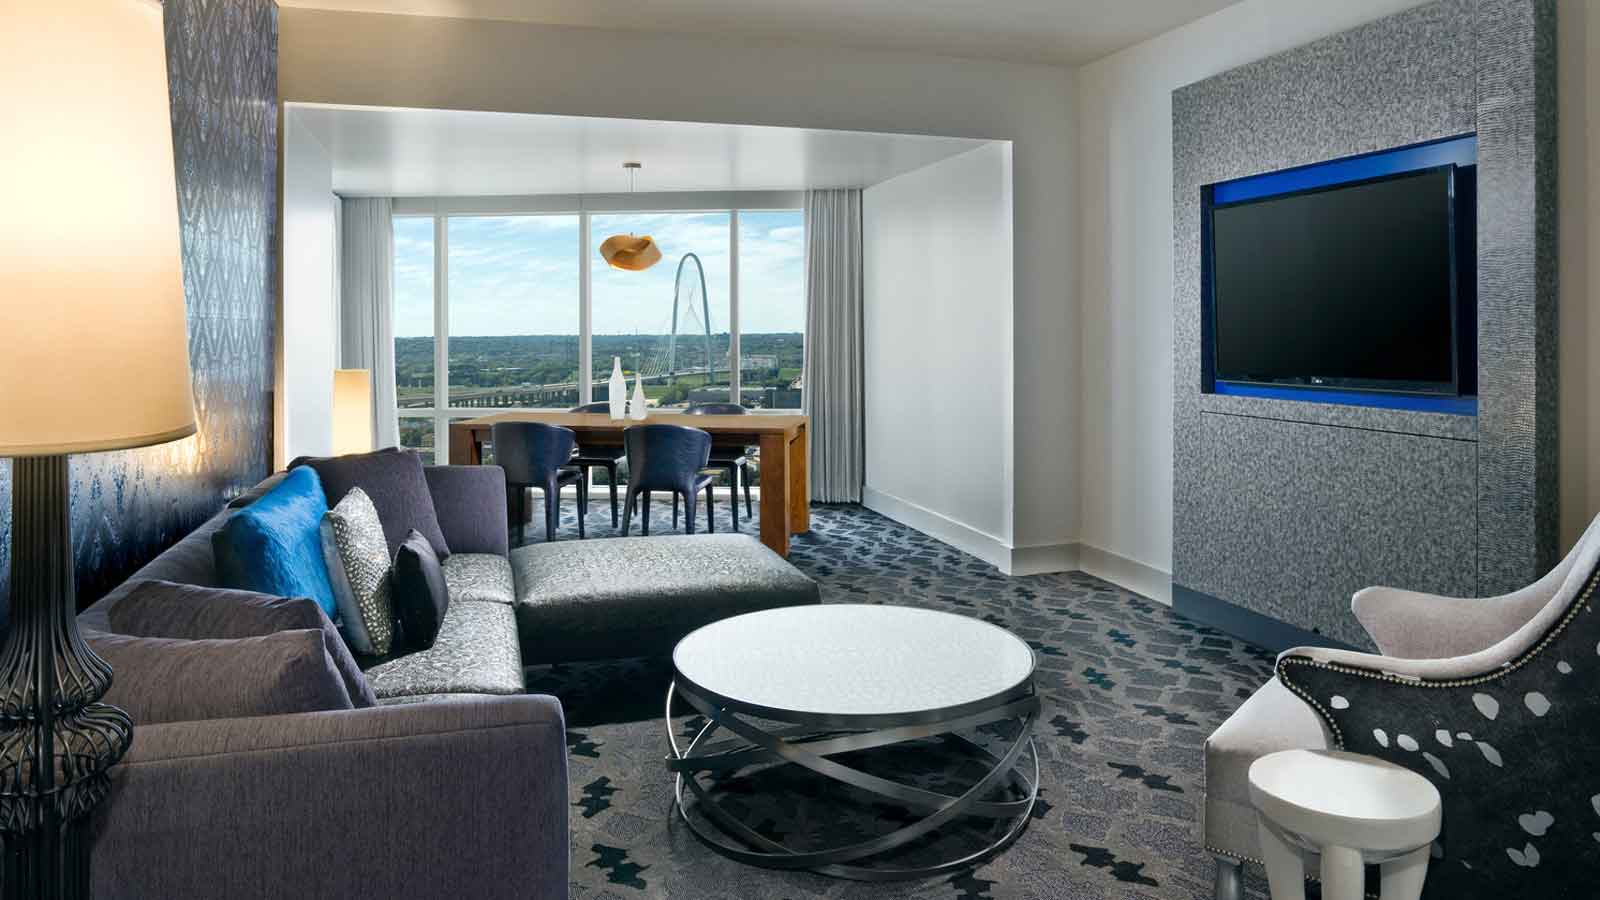 Downtown Dallas Hotel Rooms